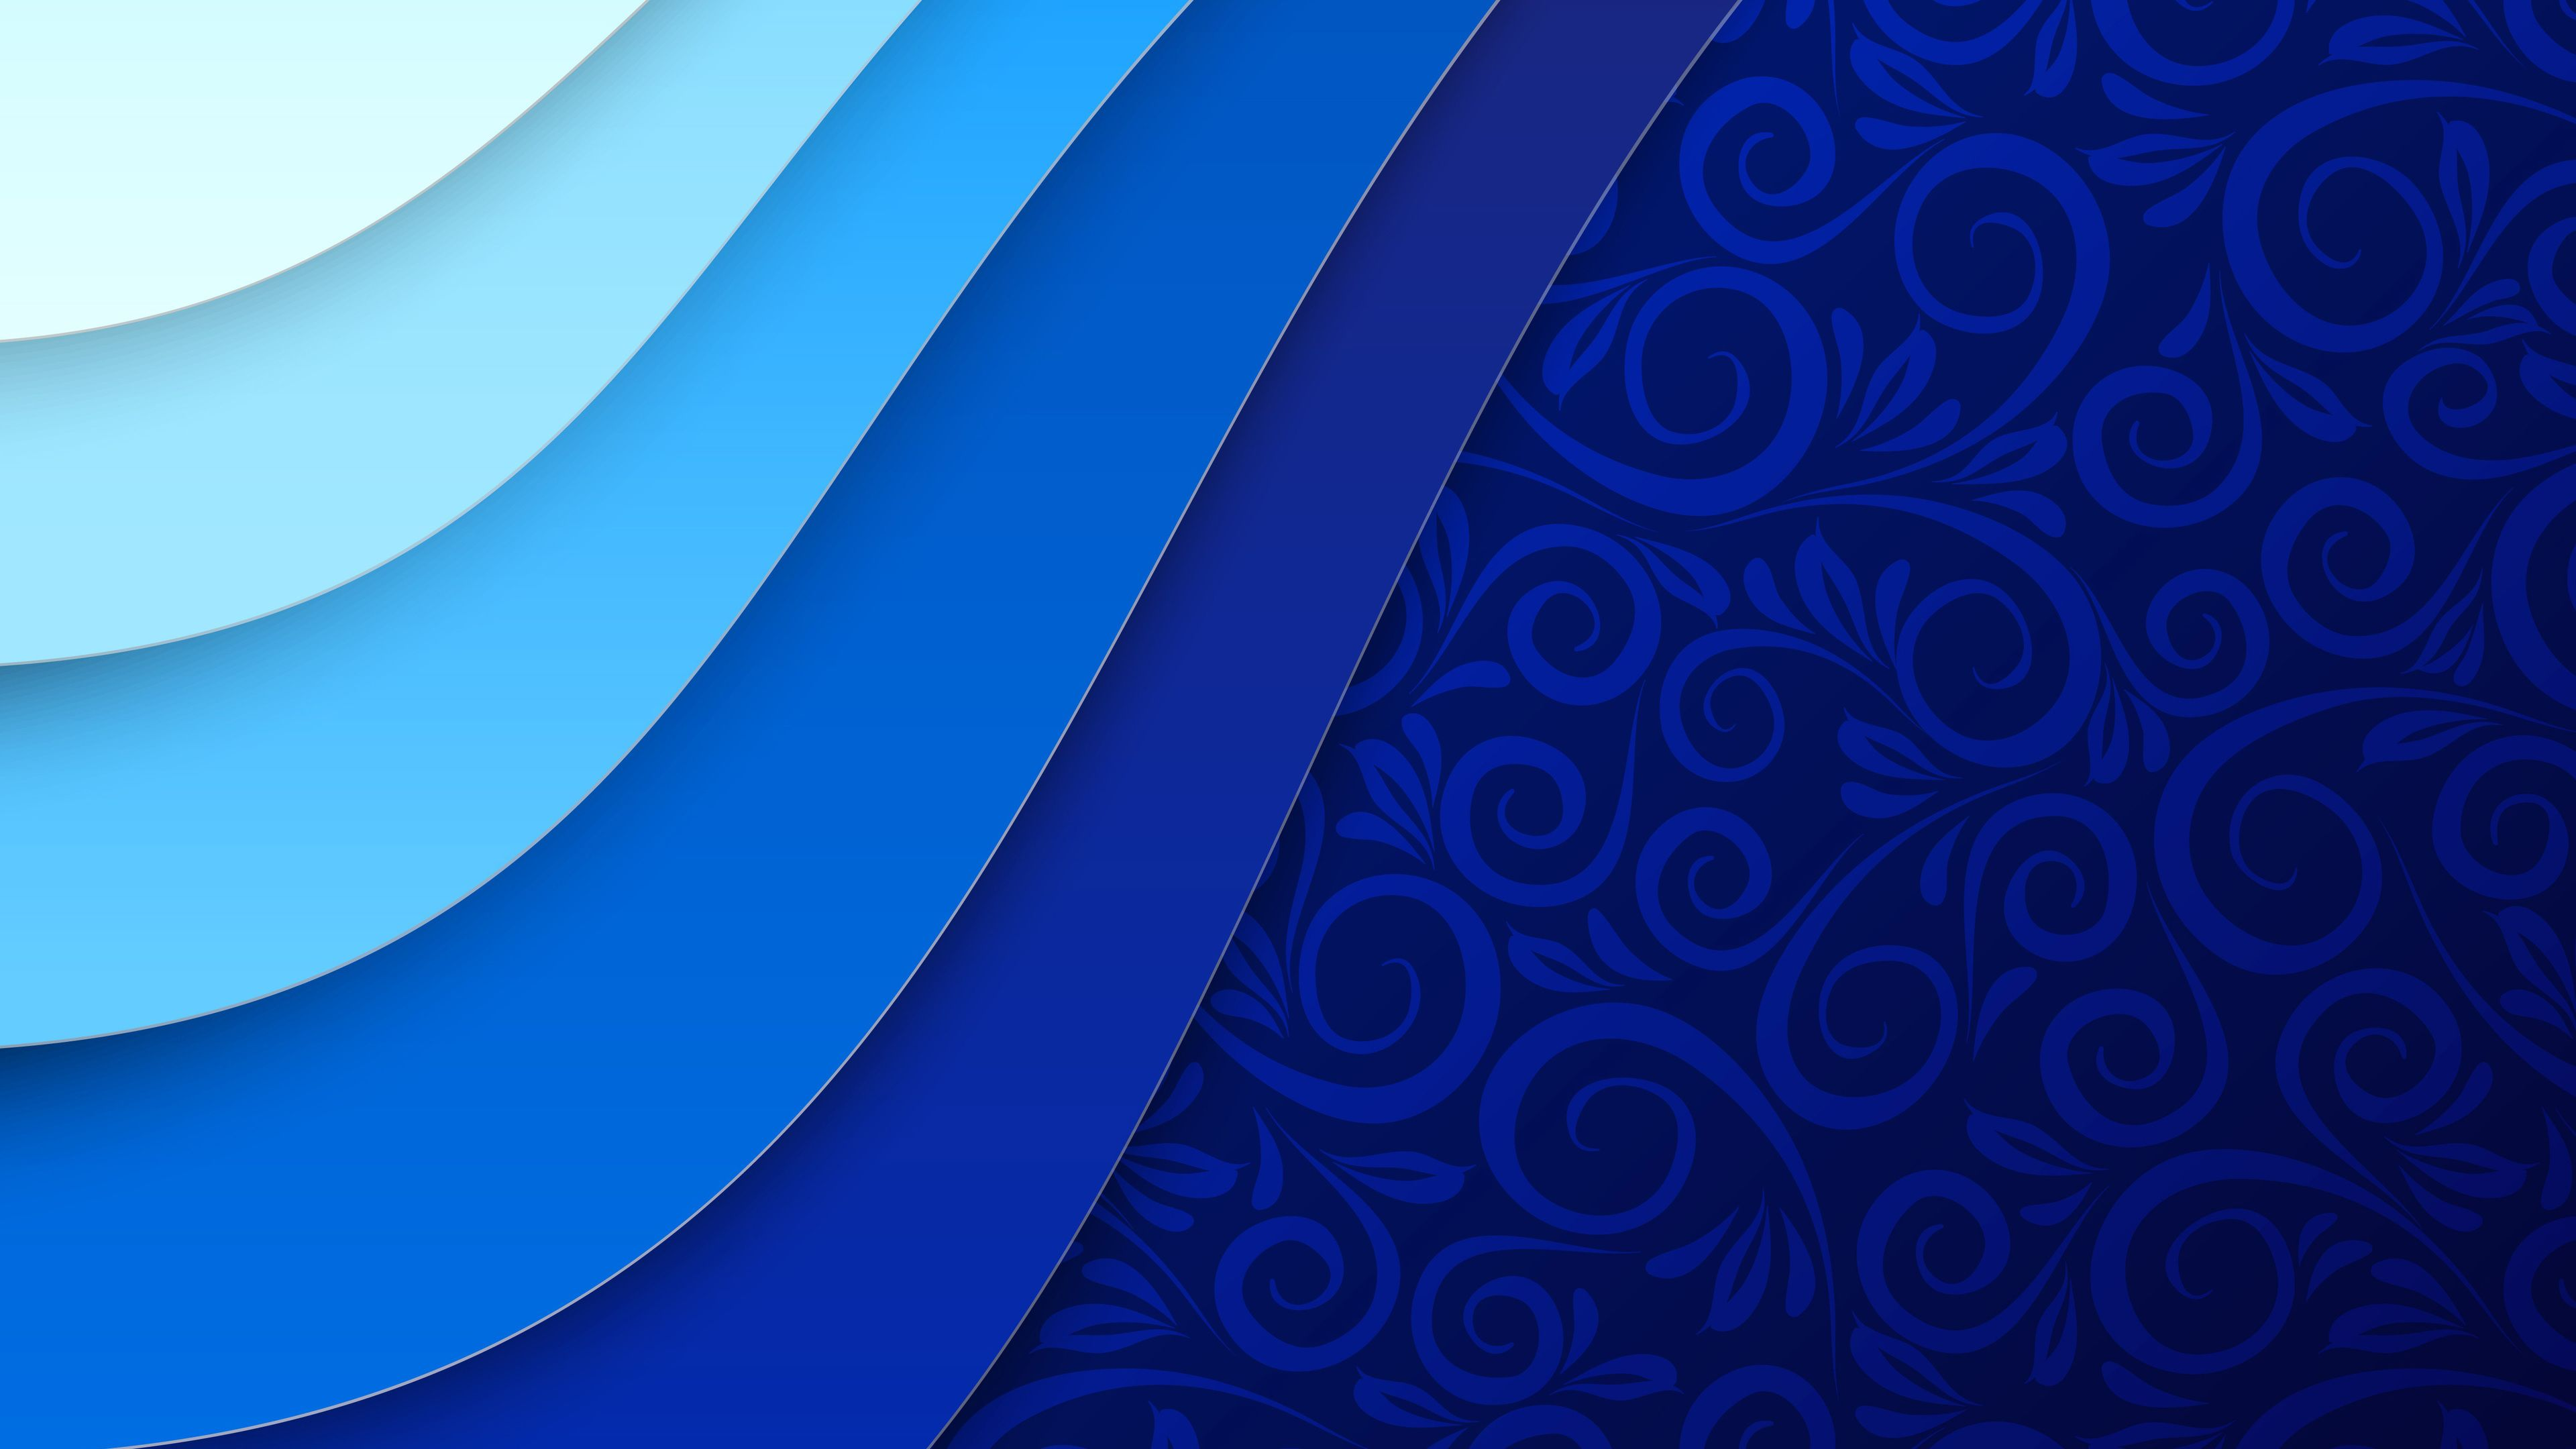 Abstract Blue Texture 5k Texture Wallpapers Hd Wallpapers Blue Wallpapers Abstract Wallpapers 5k Wallpapers Abstract Wallpapers Blue Texture 5k Wallpaper